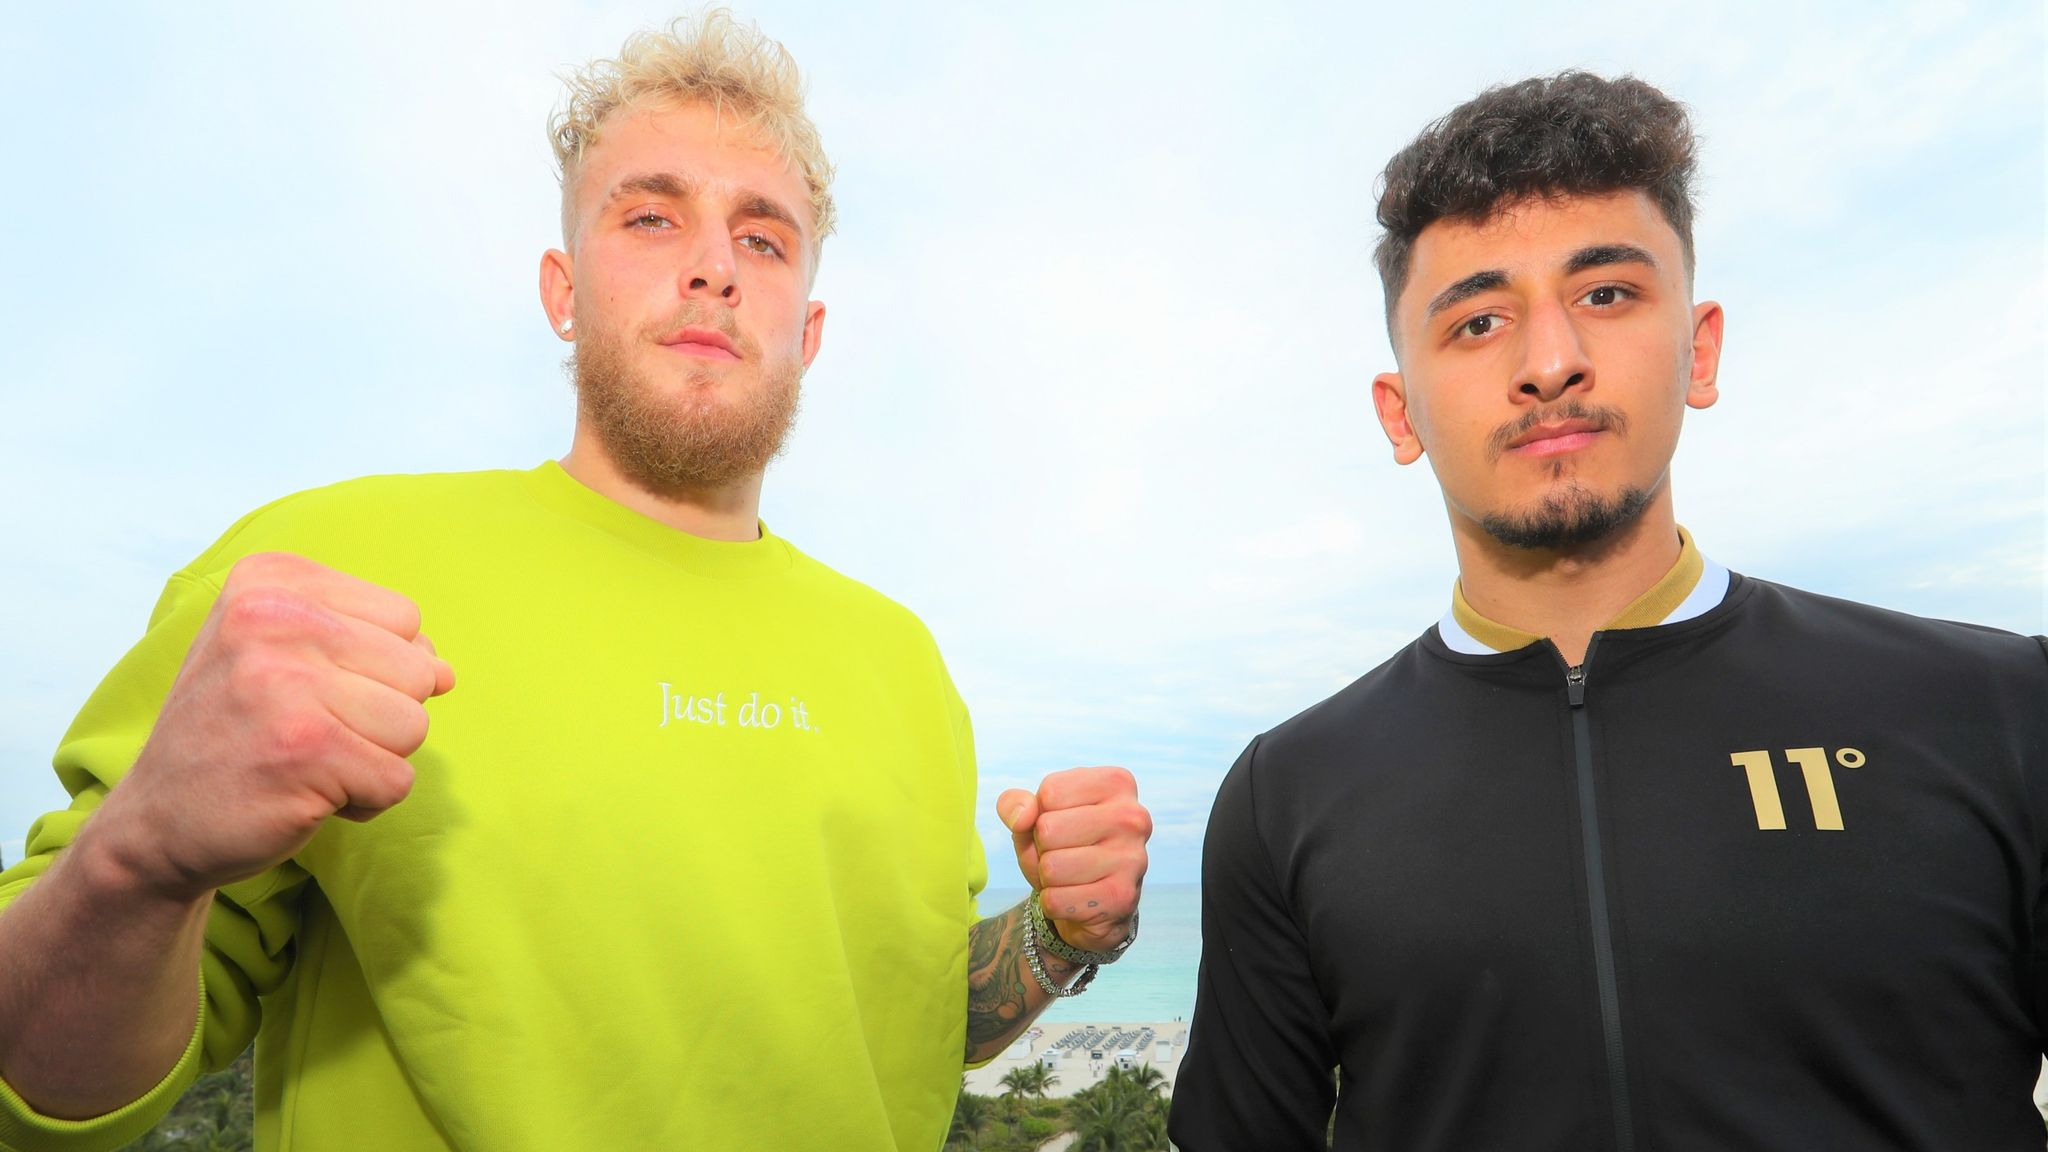 Paul vs Gib: Jake Paul has 'caught the boxing bug' and could extend pro career